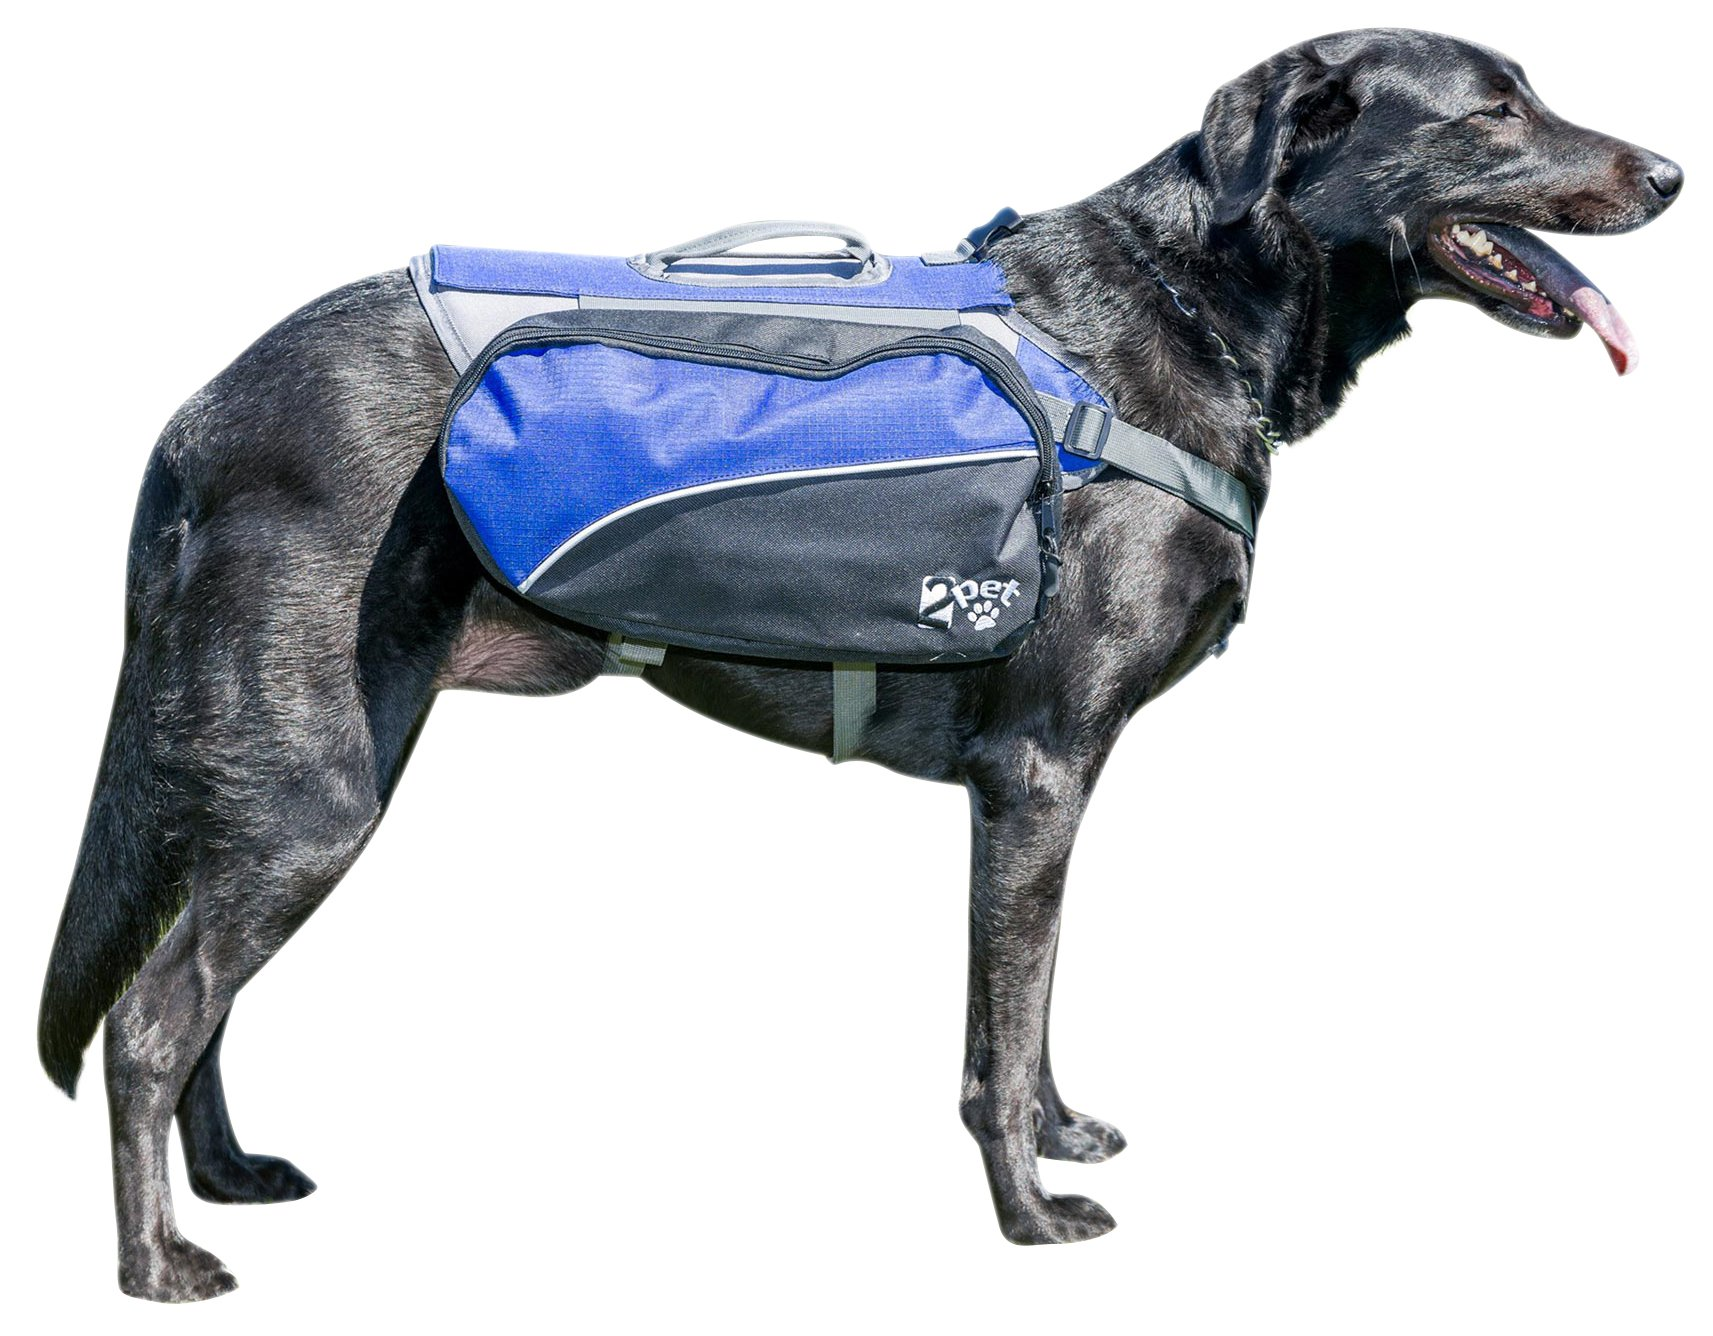 Dog Backpack for Hiking by 2PET Compact Dog Saddlebag for Dogs. Adjustable Harness, Comfortable Fit-Perfect Dog Carrier Backpack with 2 Zipper Pockets & Bottle Holder for Outdoor Activities Large Blue